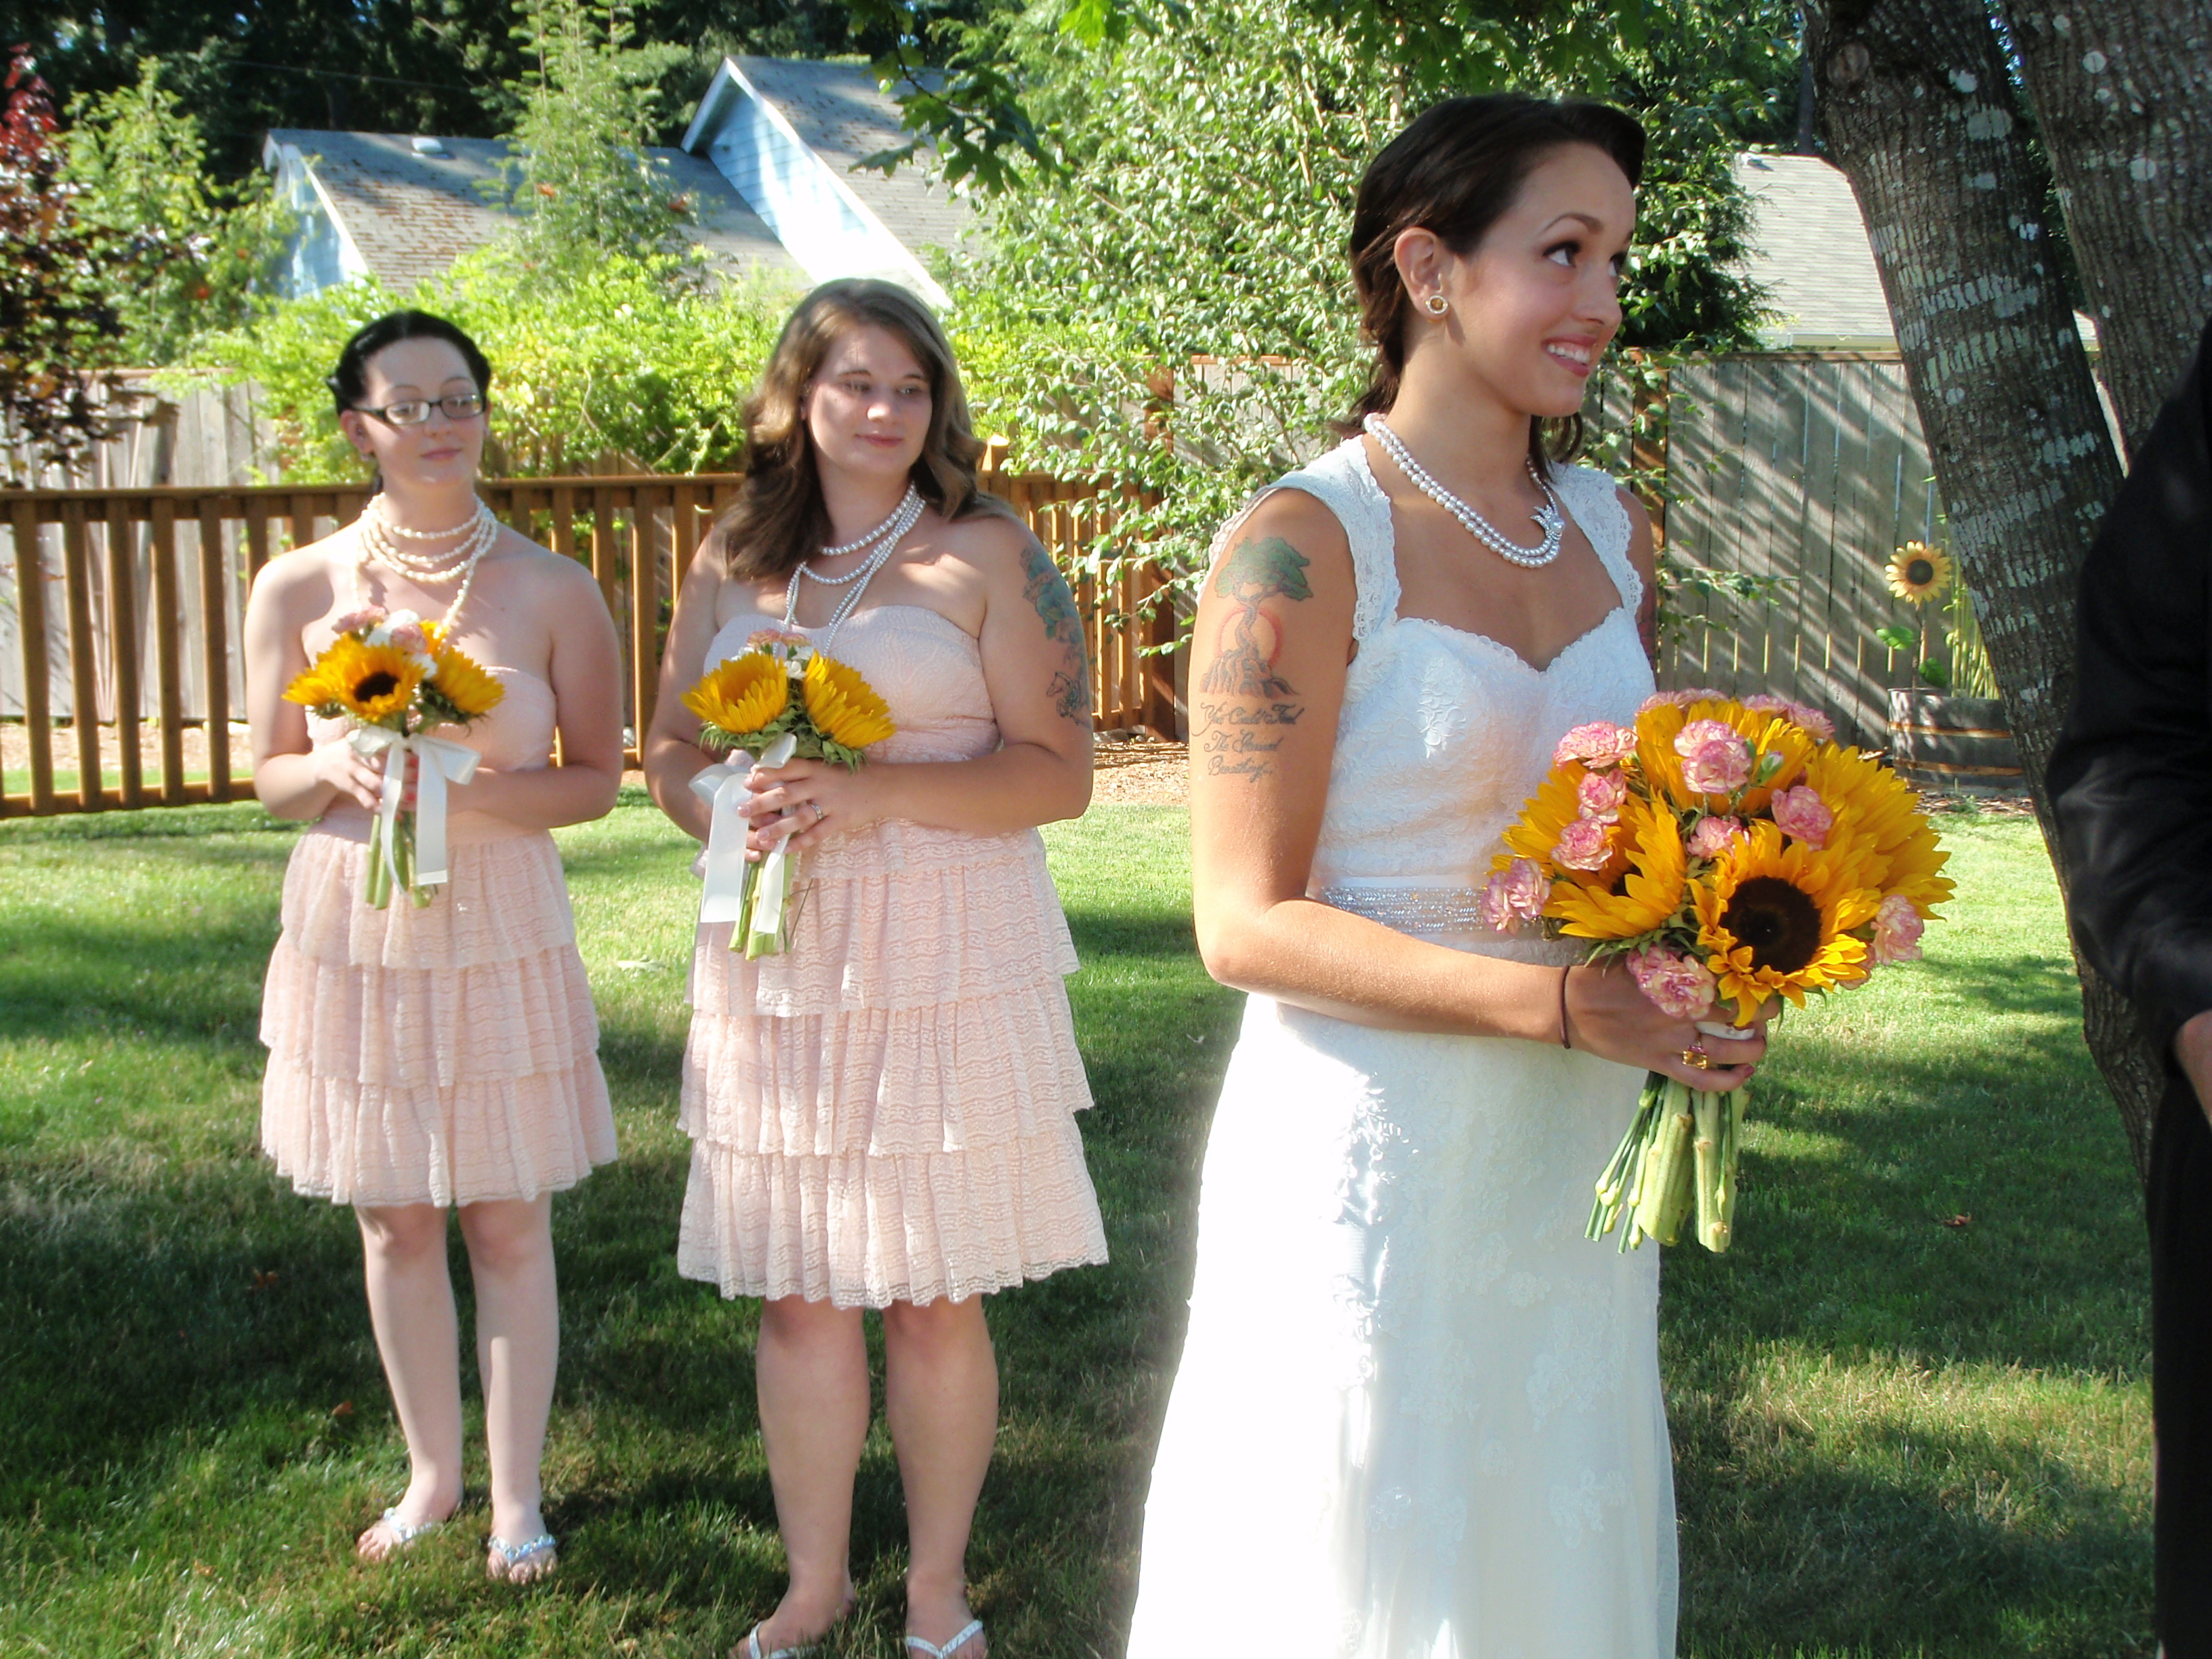 Beauty, Ceremony, Flowers & Decor, Bridesmaids, Bridesmaids Dresses, Wedding Dresses, Vintage Wedding Dresses, Fashion, white, yellow, pink, dress, Makeup, Ceremony Flowers, Bridesmaid Bouquets, Vintage, Outdoor, Flowers, Vintage Wedding Flowers & Decor, Hair, Flower Wedding Dresses